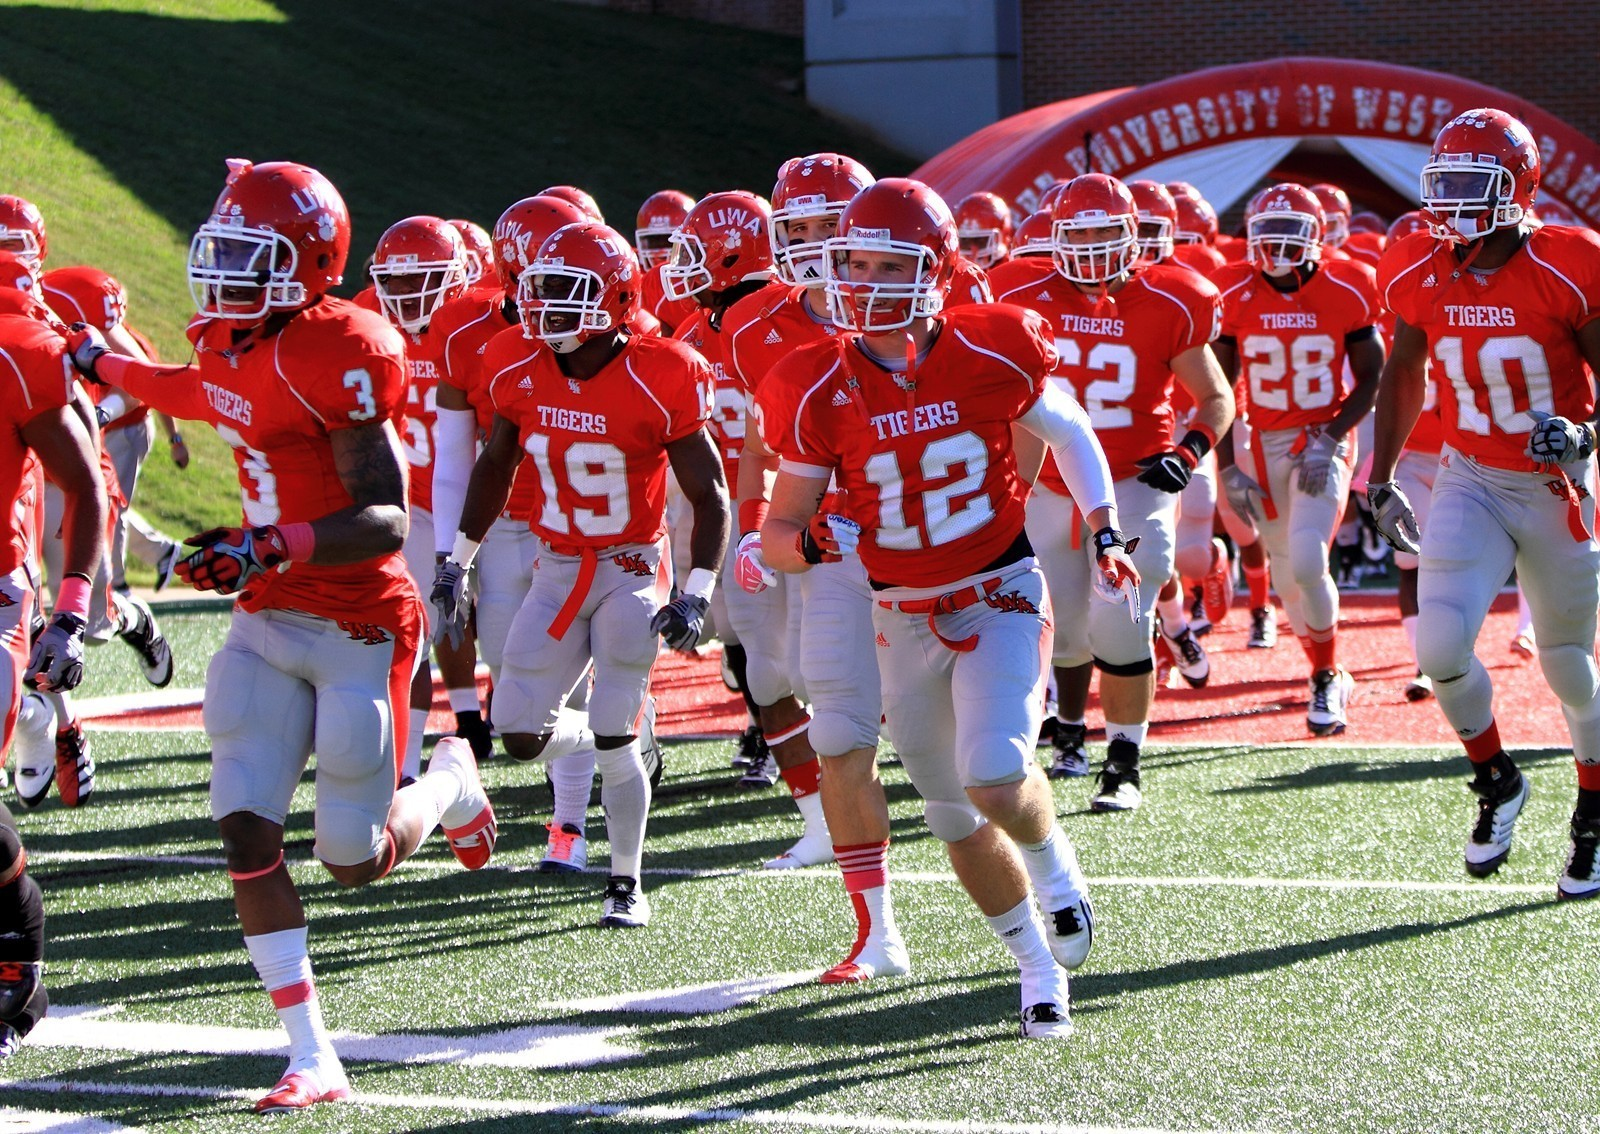 west alabama announces 2014 football schedule - university of west